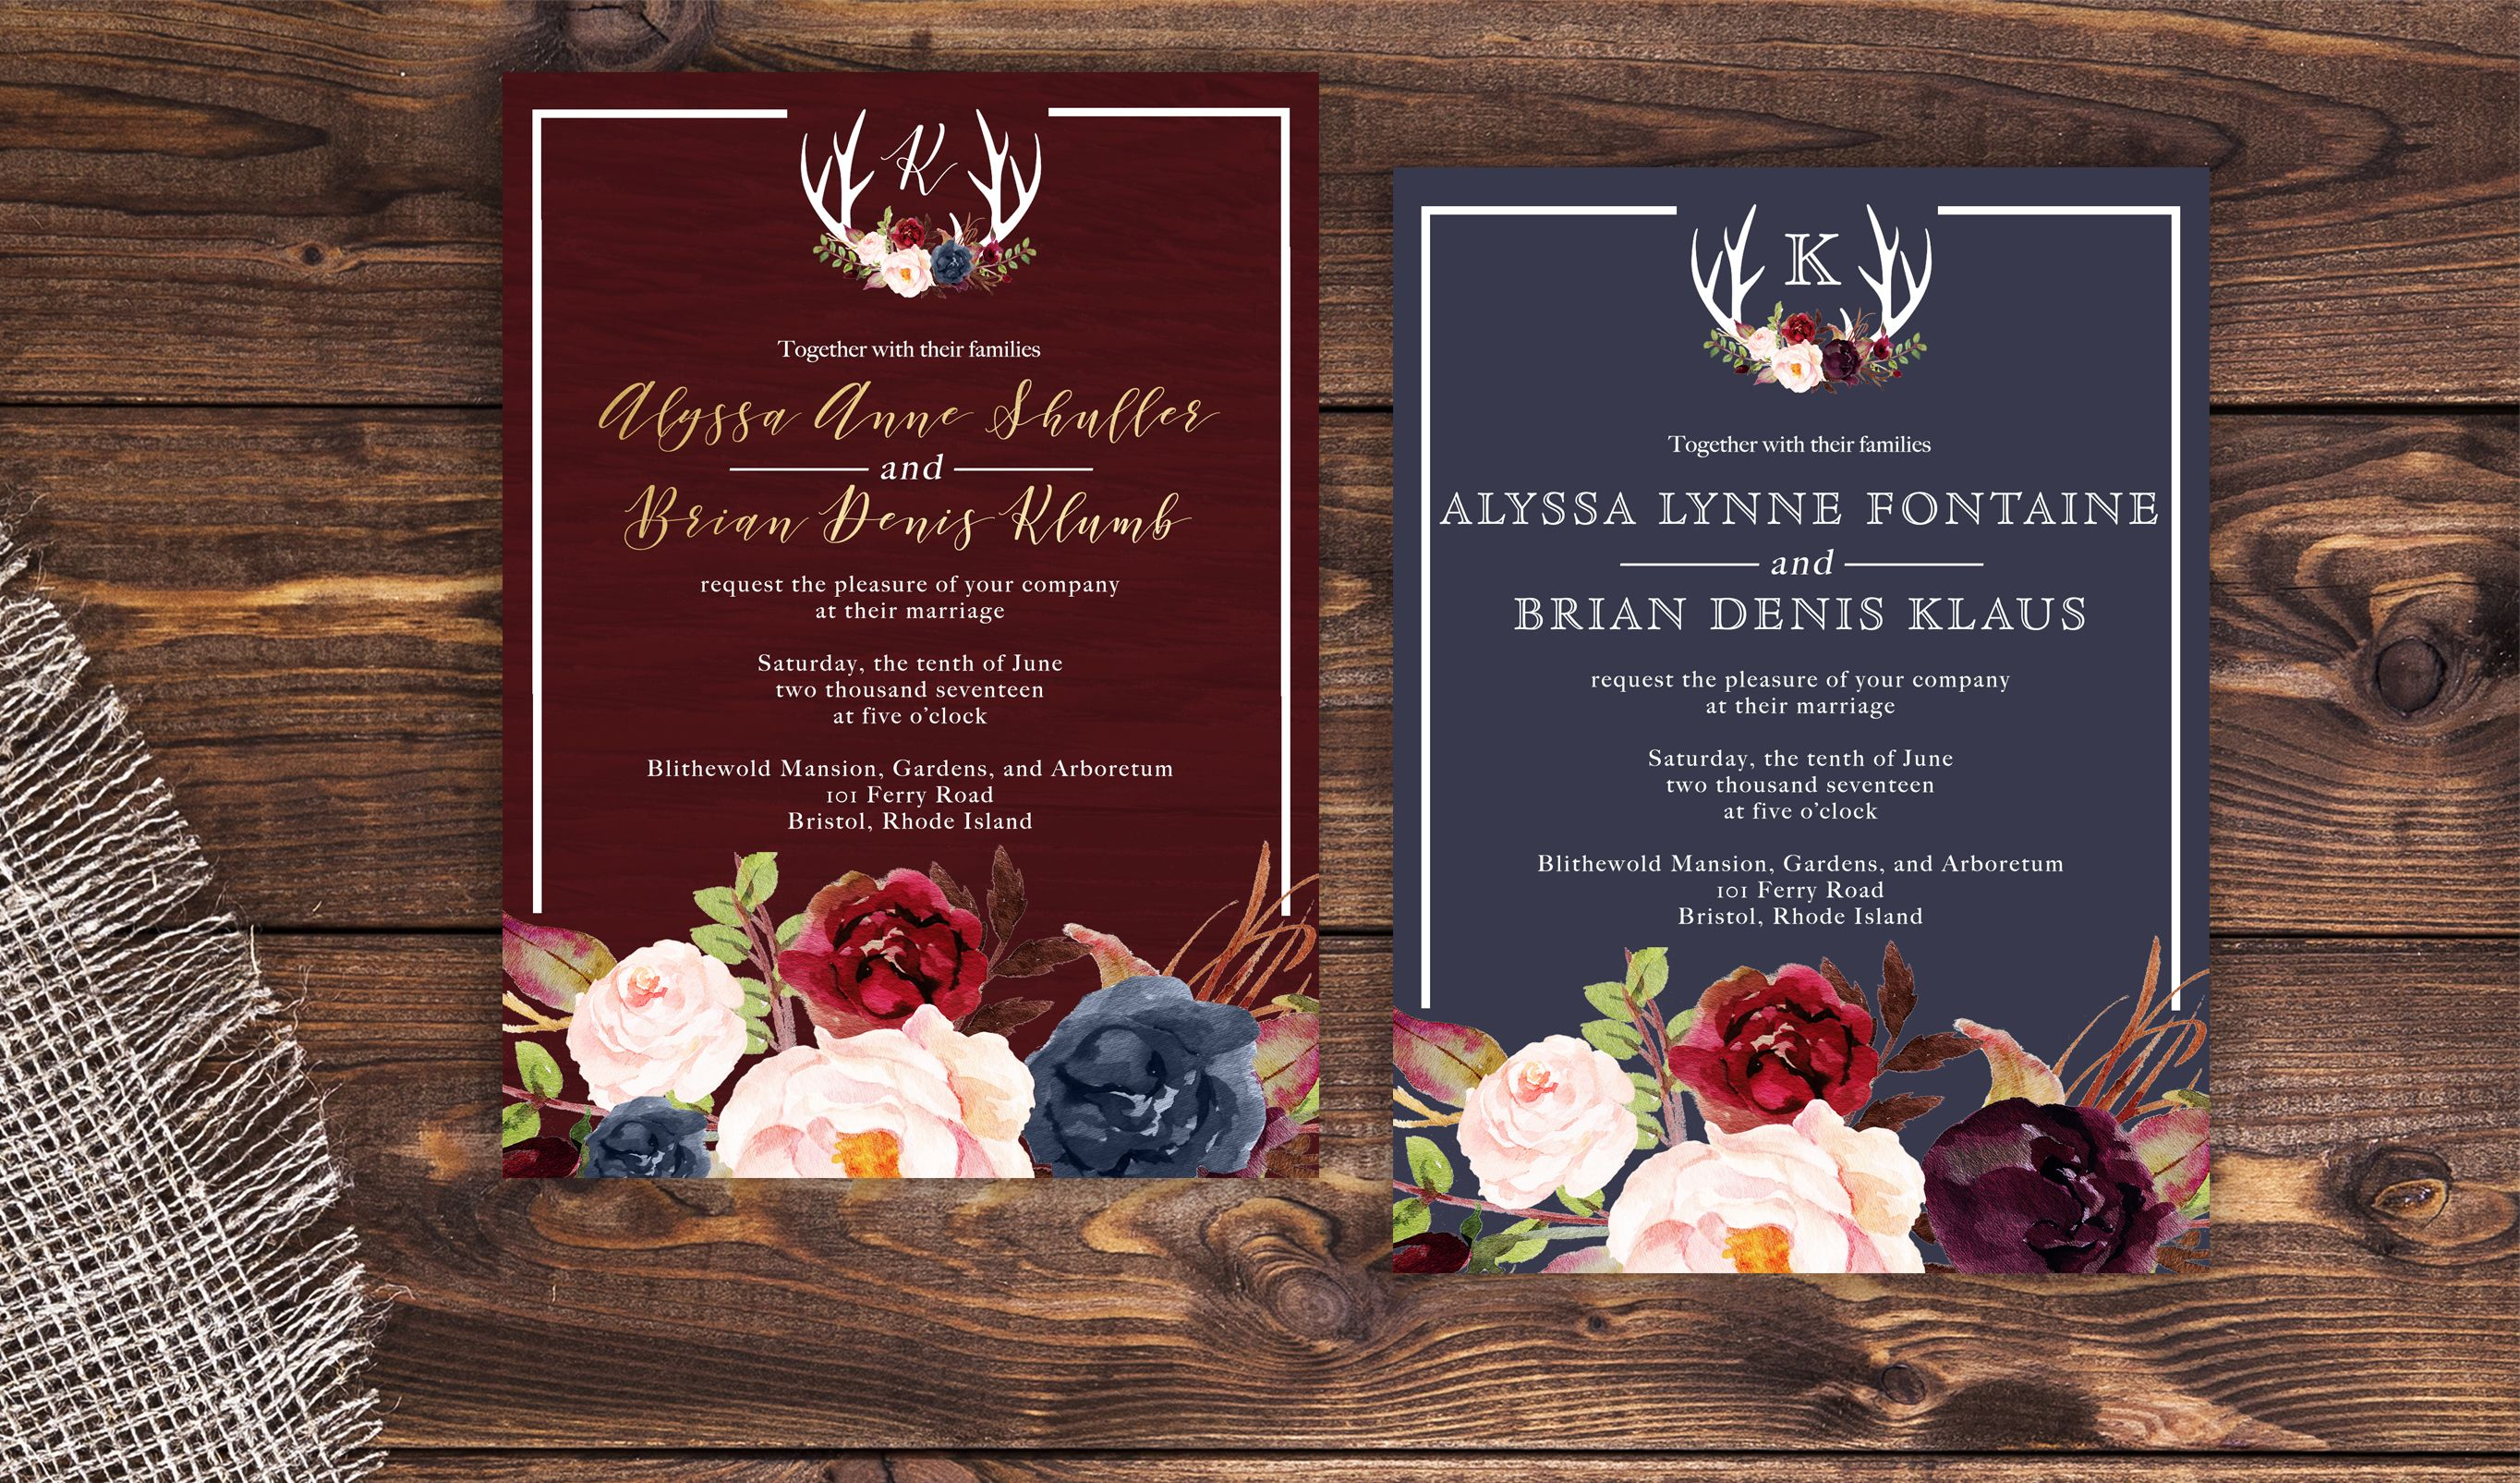 Cheap Rustic Wedding Invitations: Navy And Marsala Wedding Invitation. Rustic Wedding